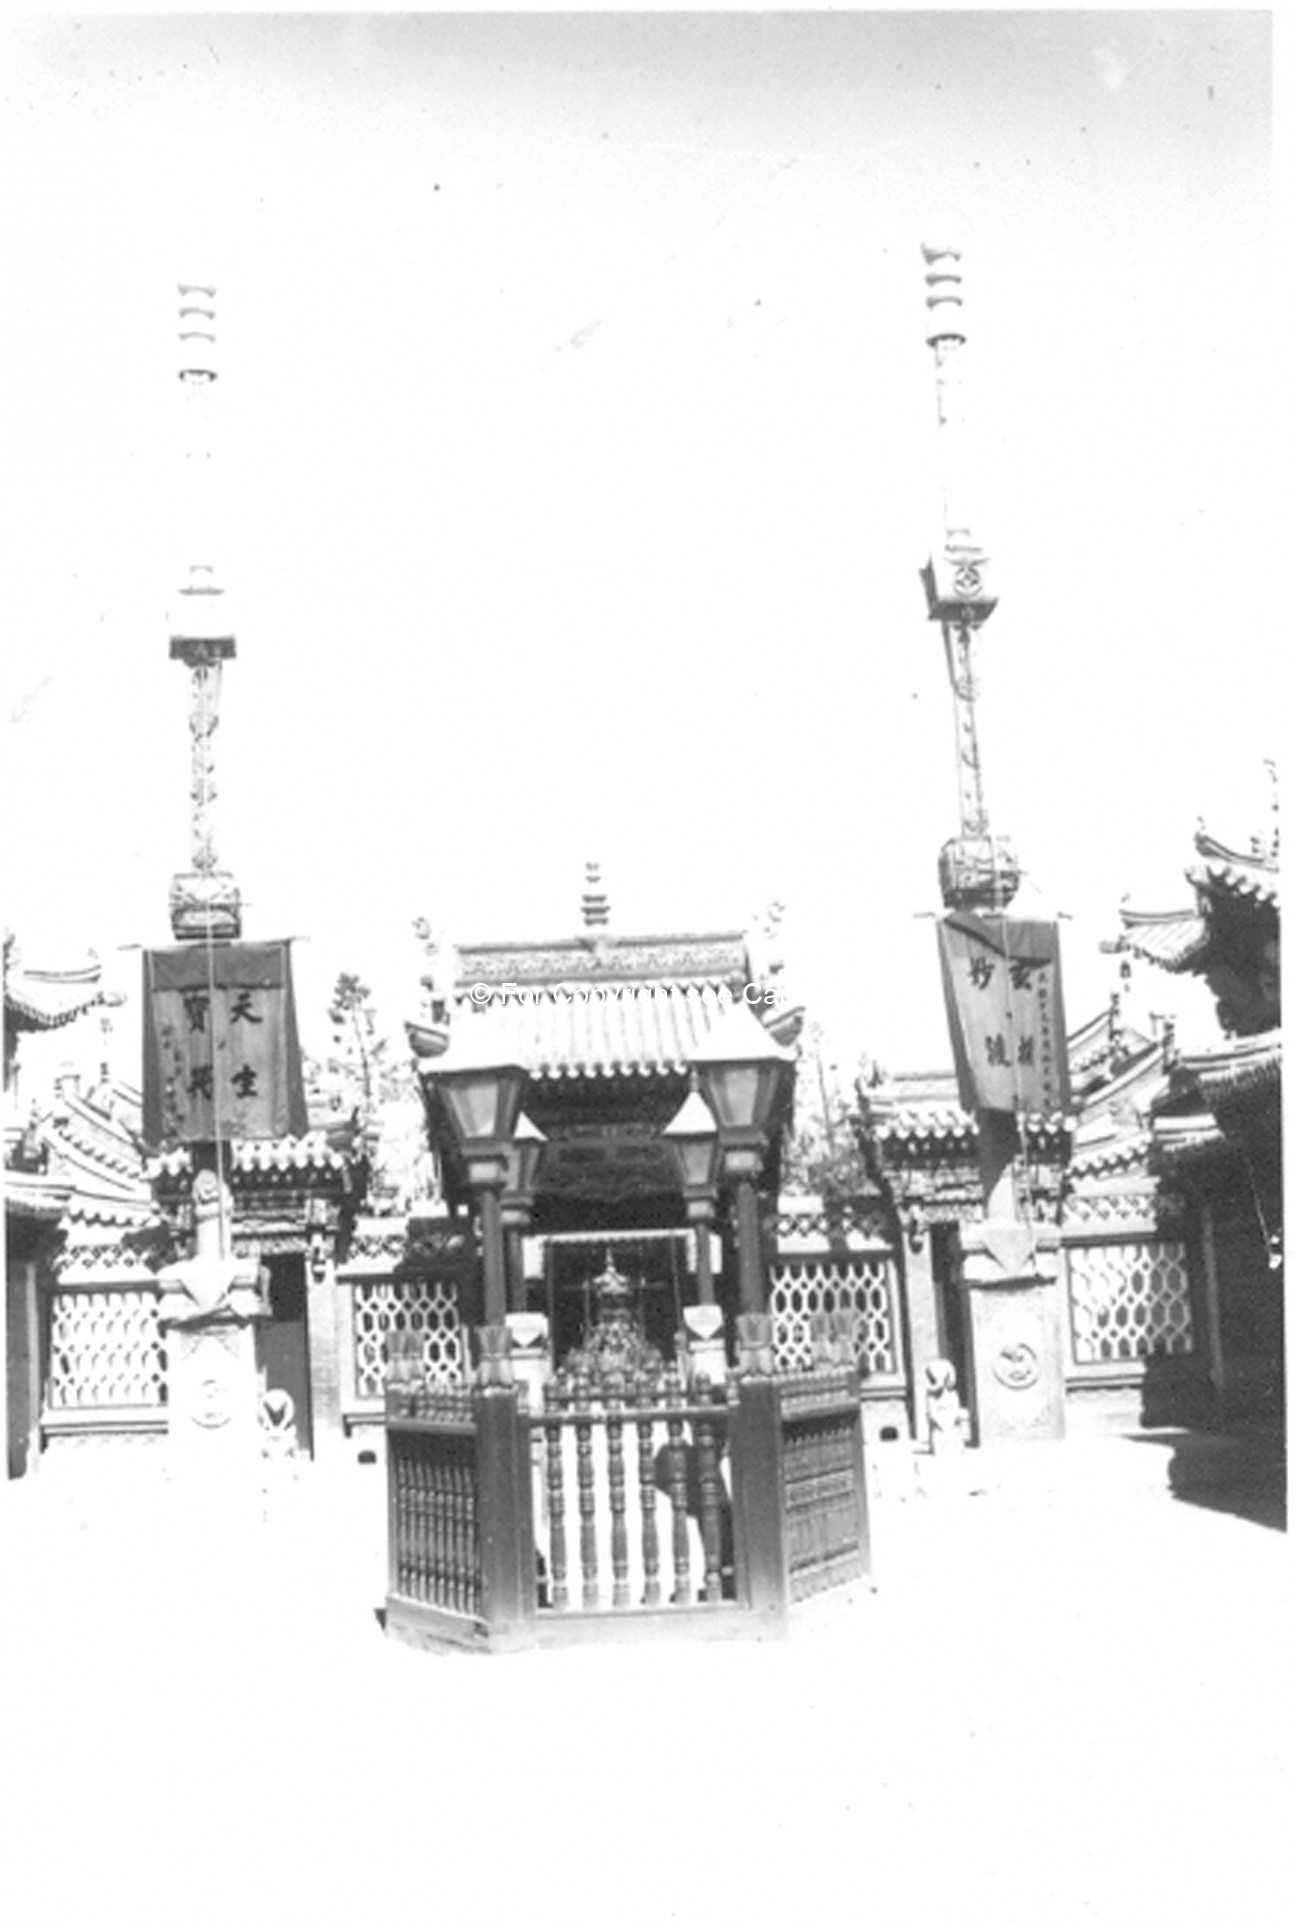 Dari ekh temple. Film Archives K-23979